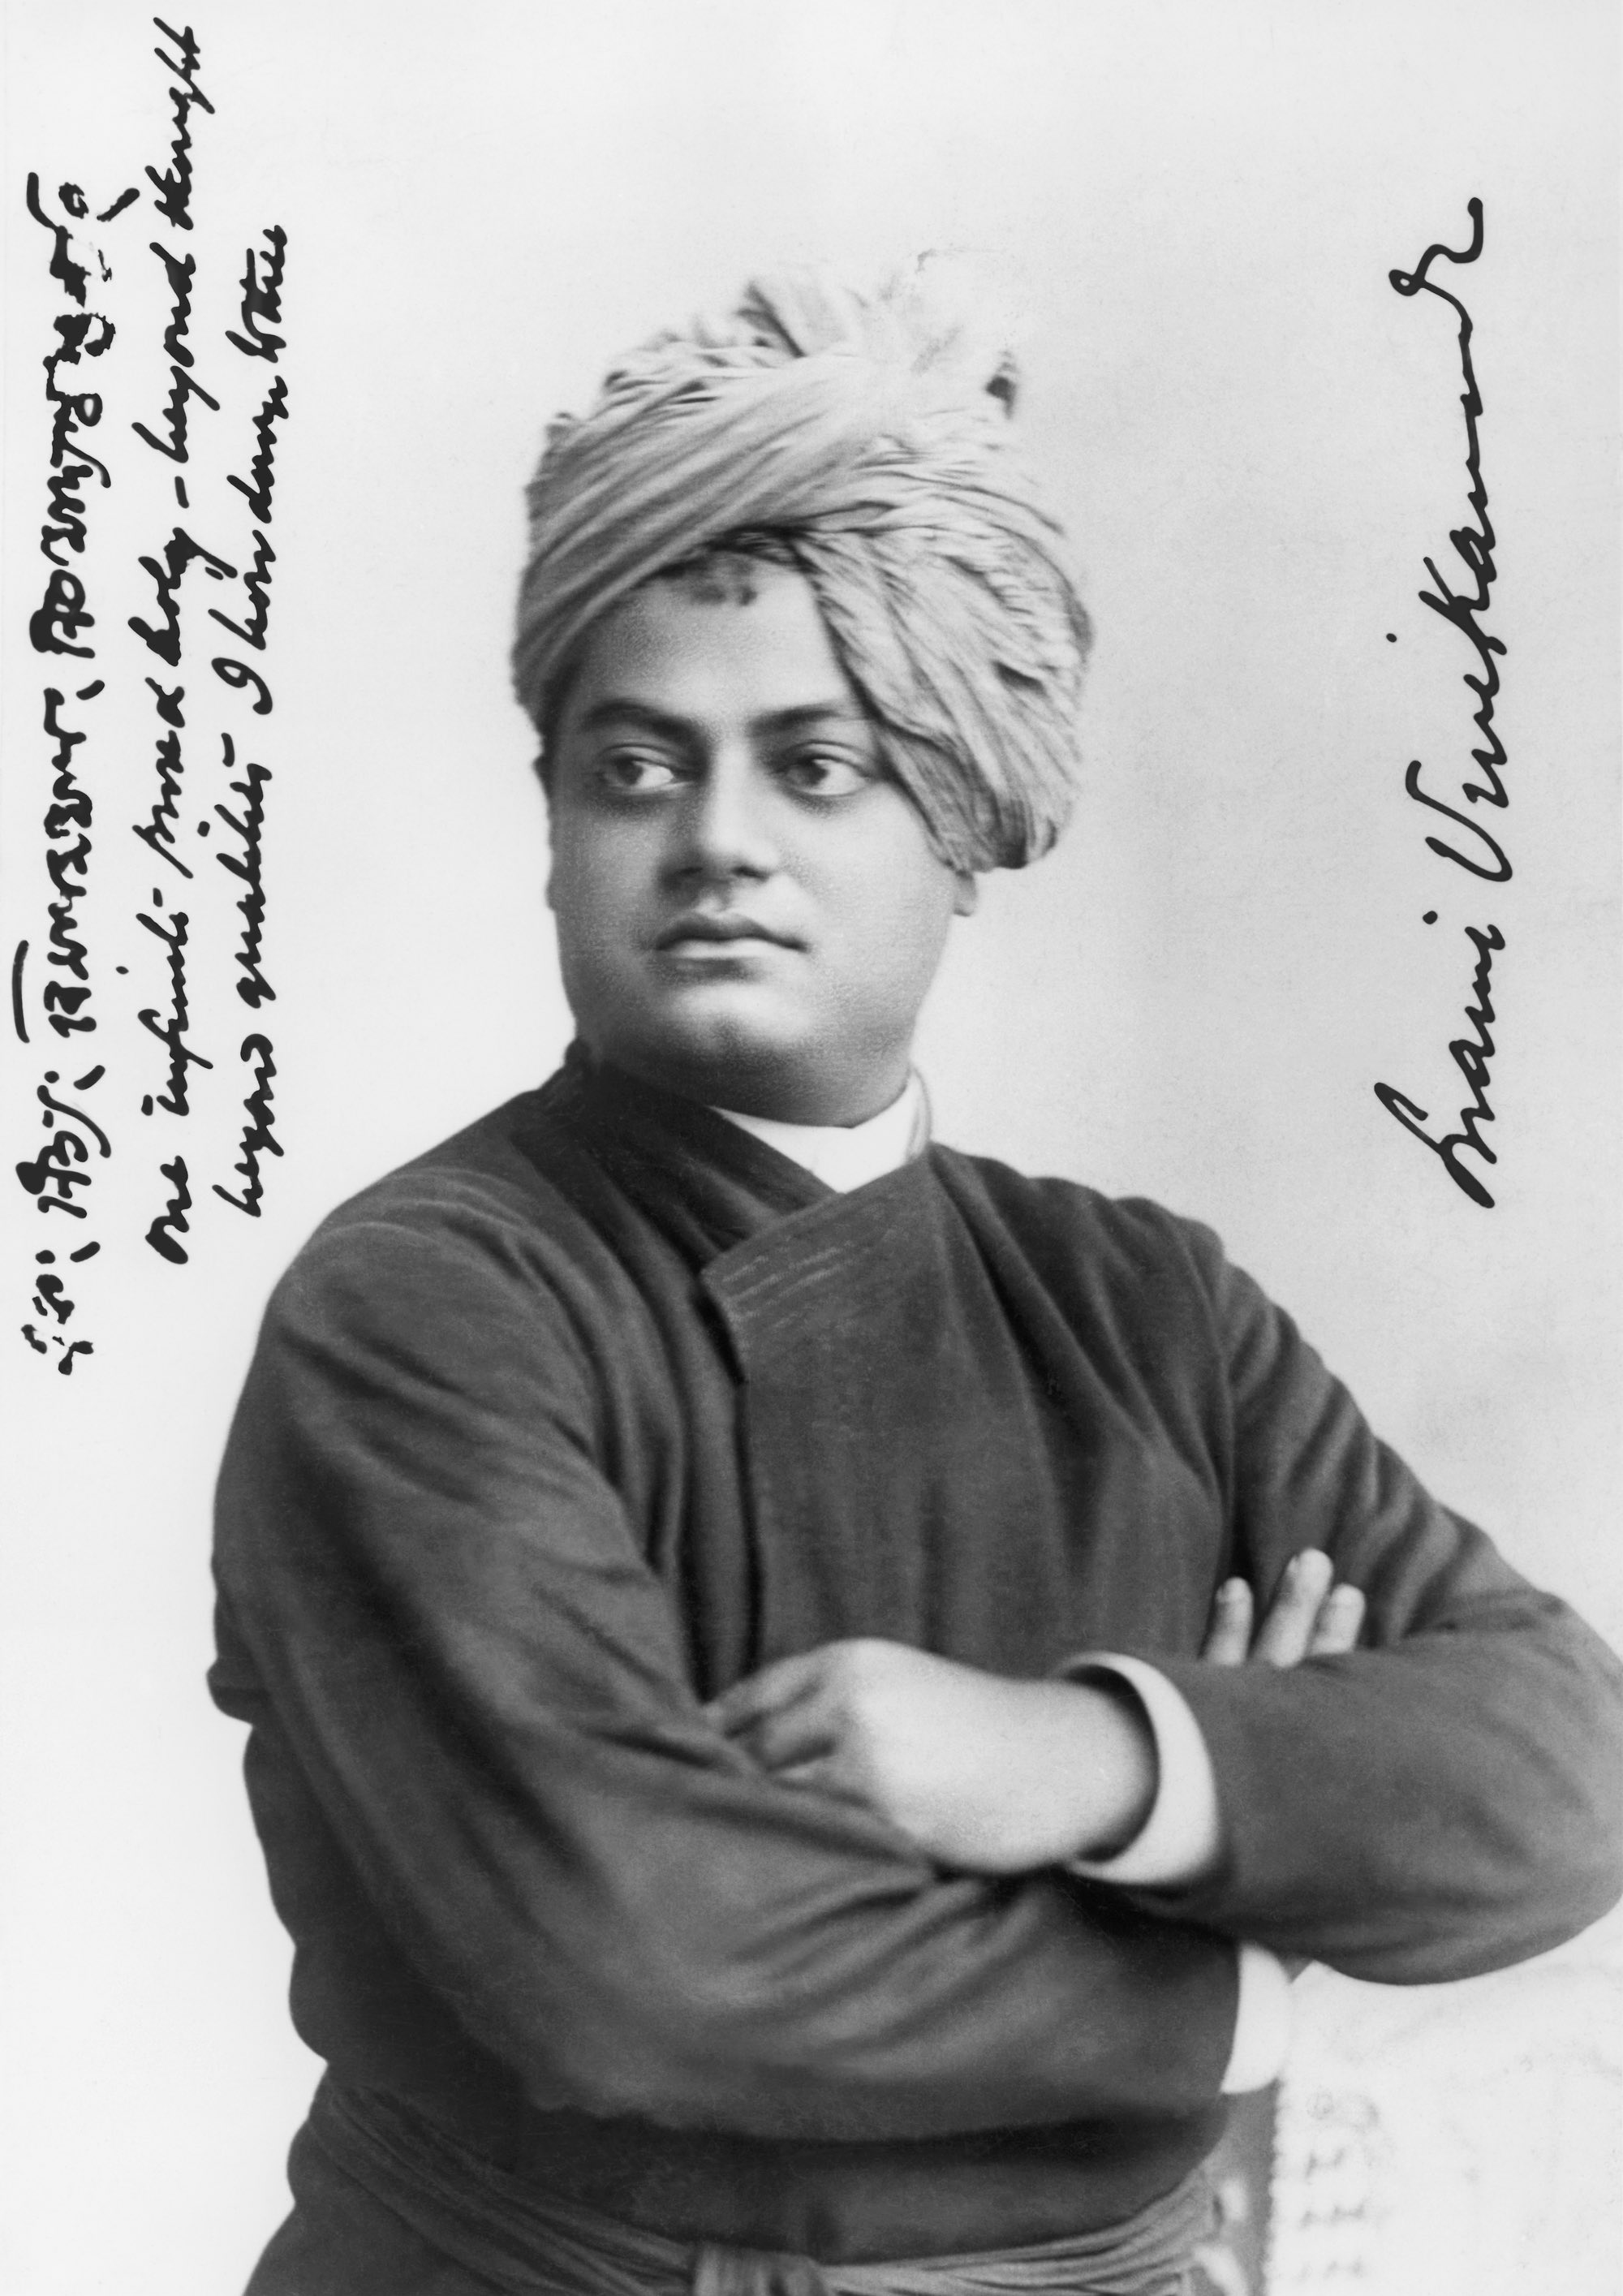 """(#21) Chicago, 1893. Swamiji has written in Bengali characters as well as in English: """"One infinite pure and holy—beyond thought beyond qualities I bow down to thee."""""""